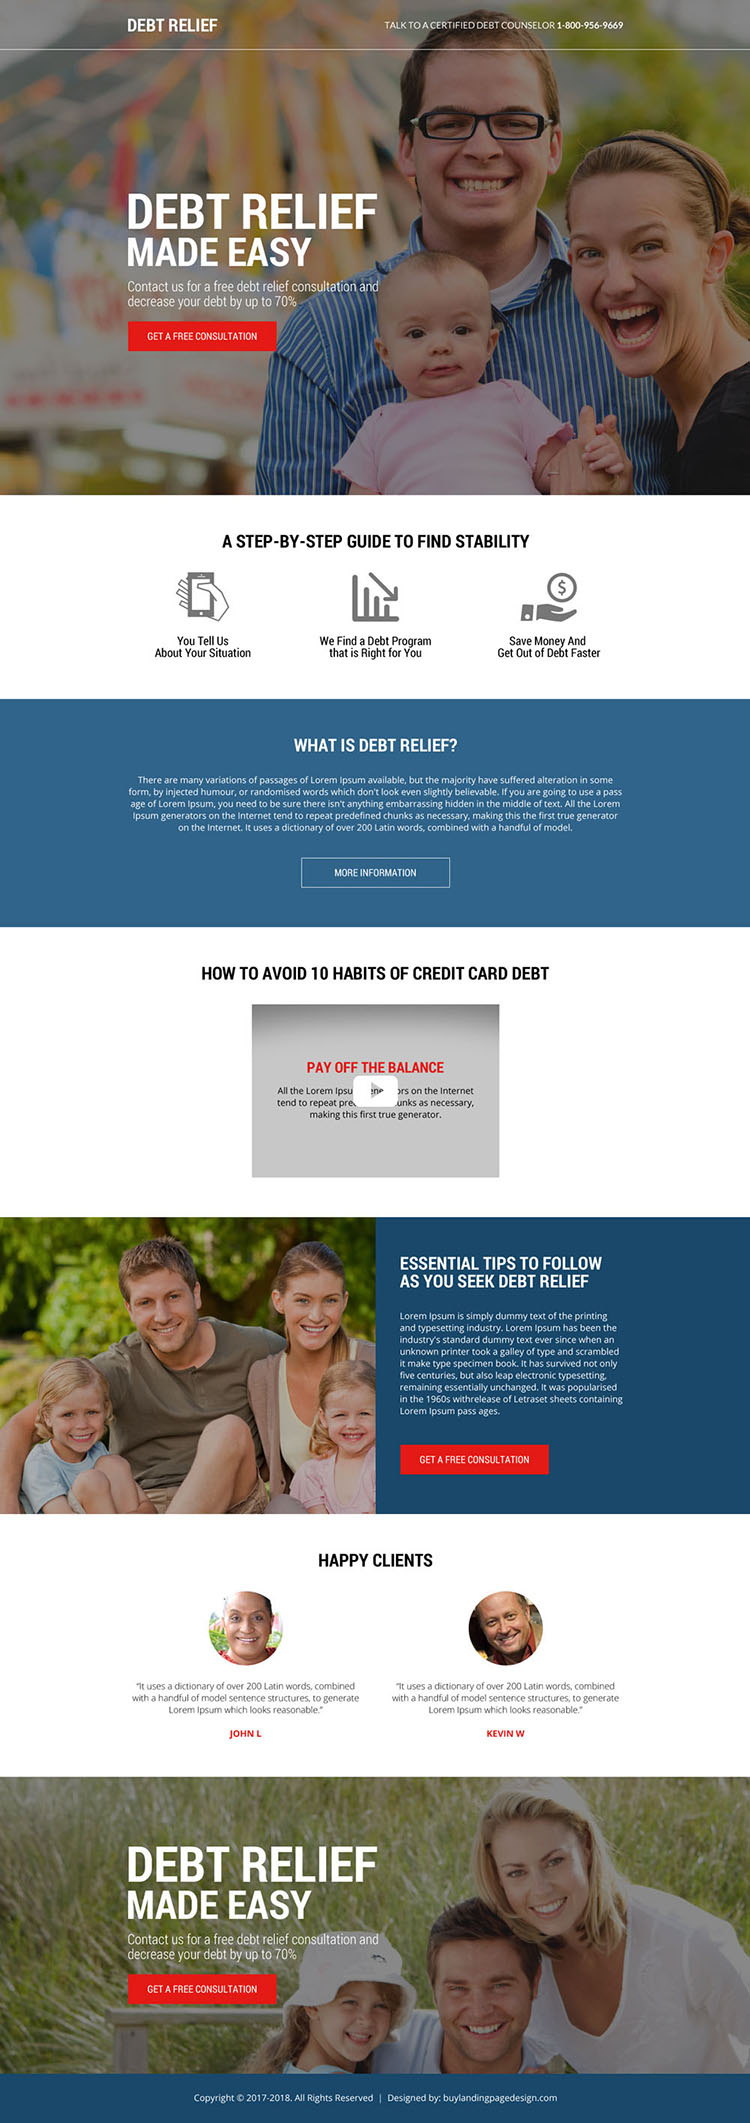 free credit card debt relief consultation modern landing page design